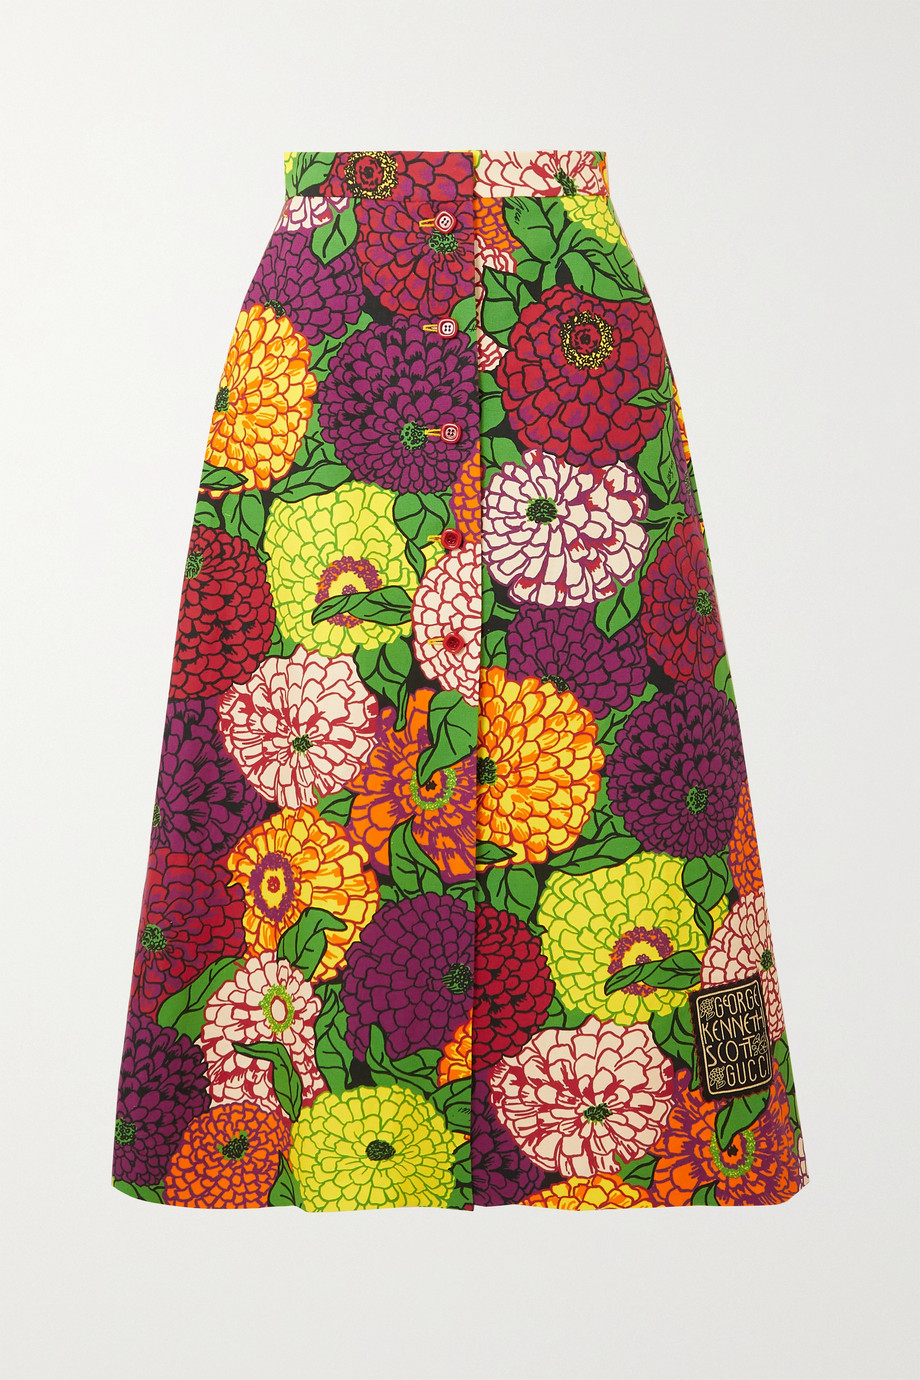 GUCCI + Ken Scott appliquéd floral-print cotton and linen-blend midi skirt